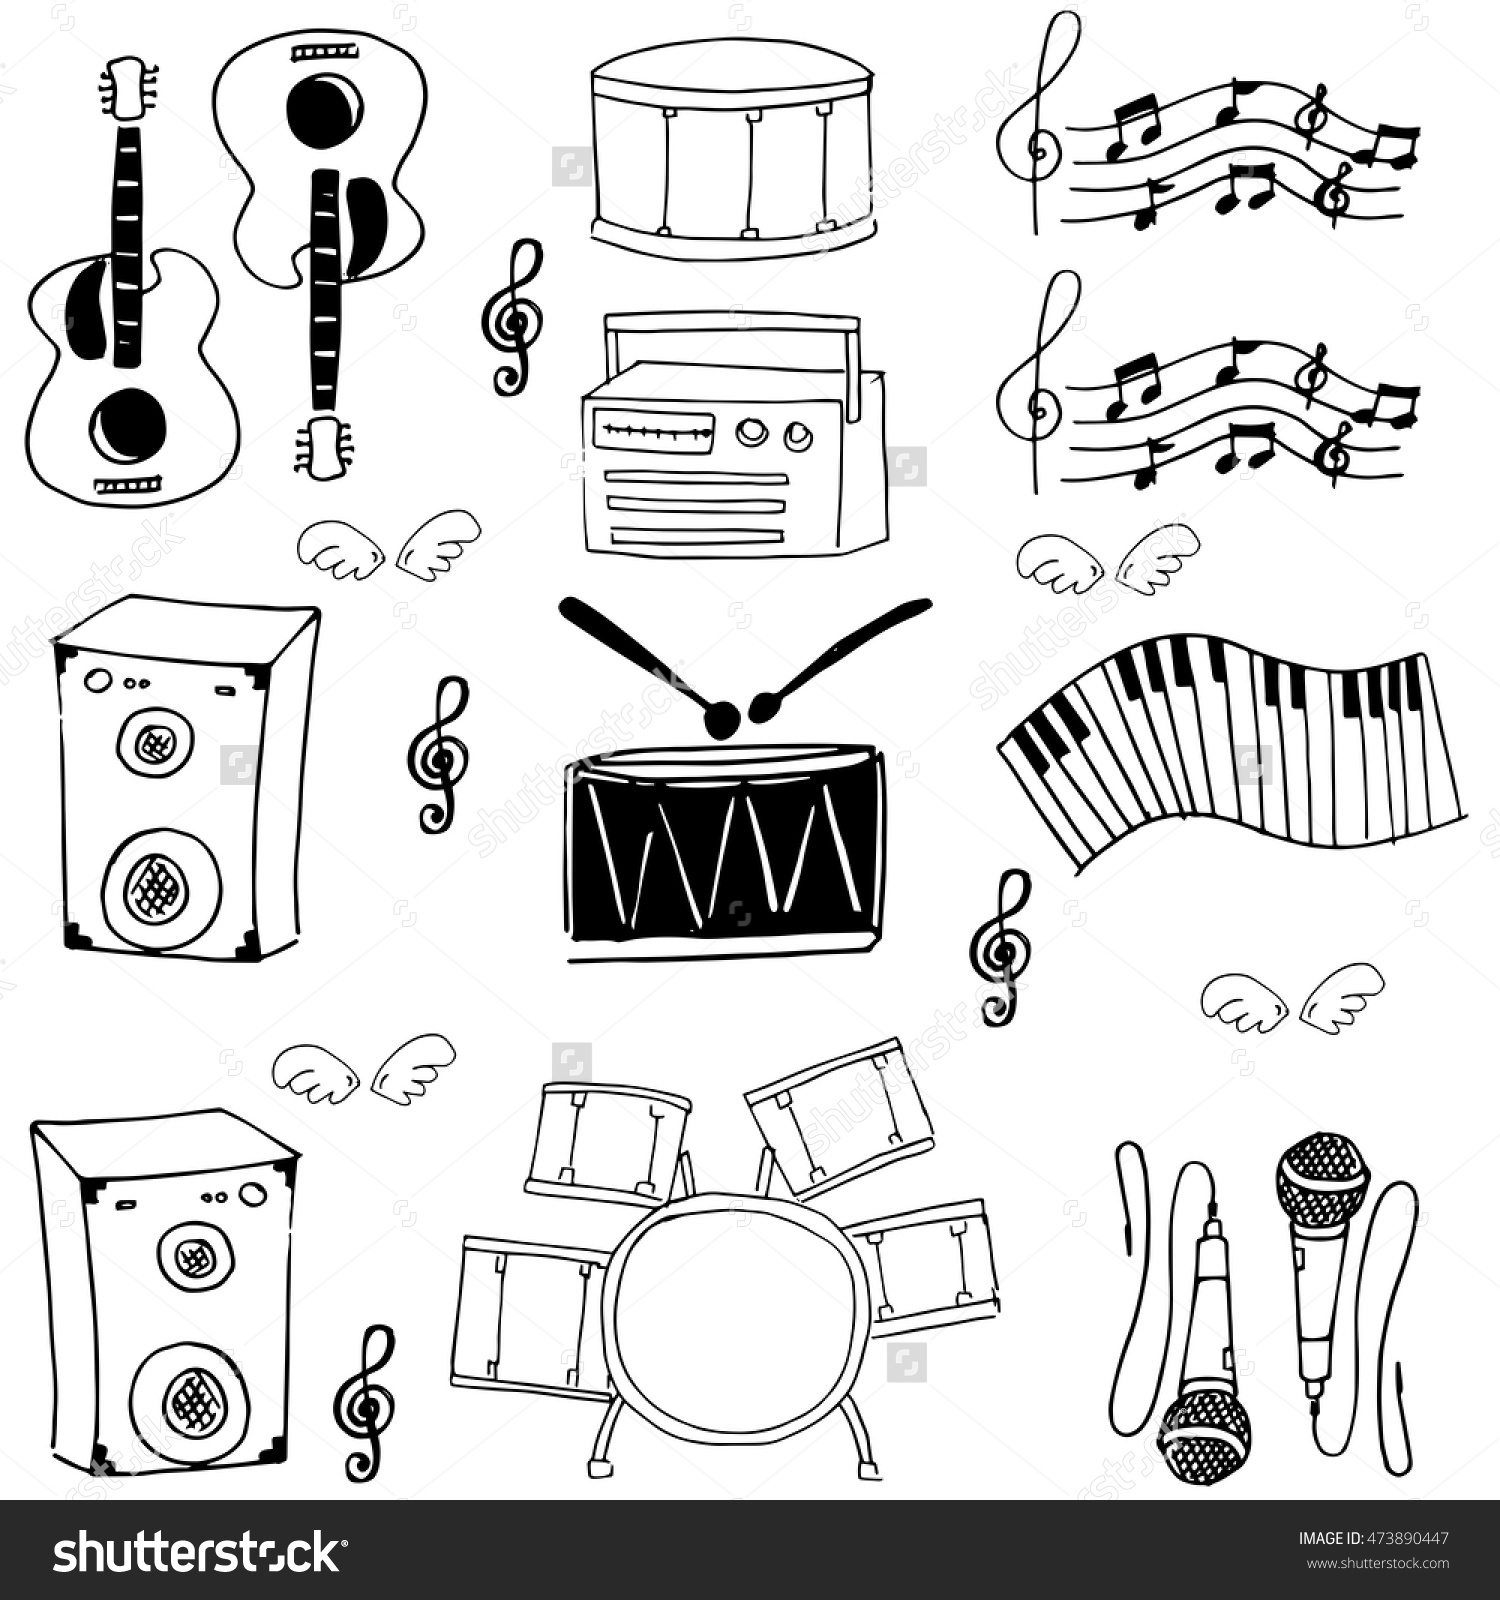 Tool (Music) clipart #2, Download drawings